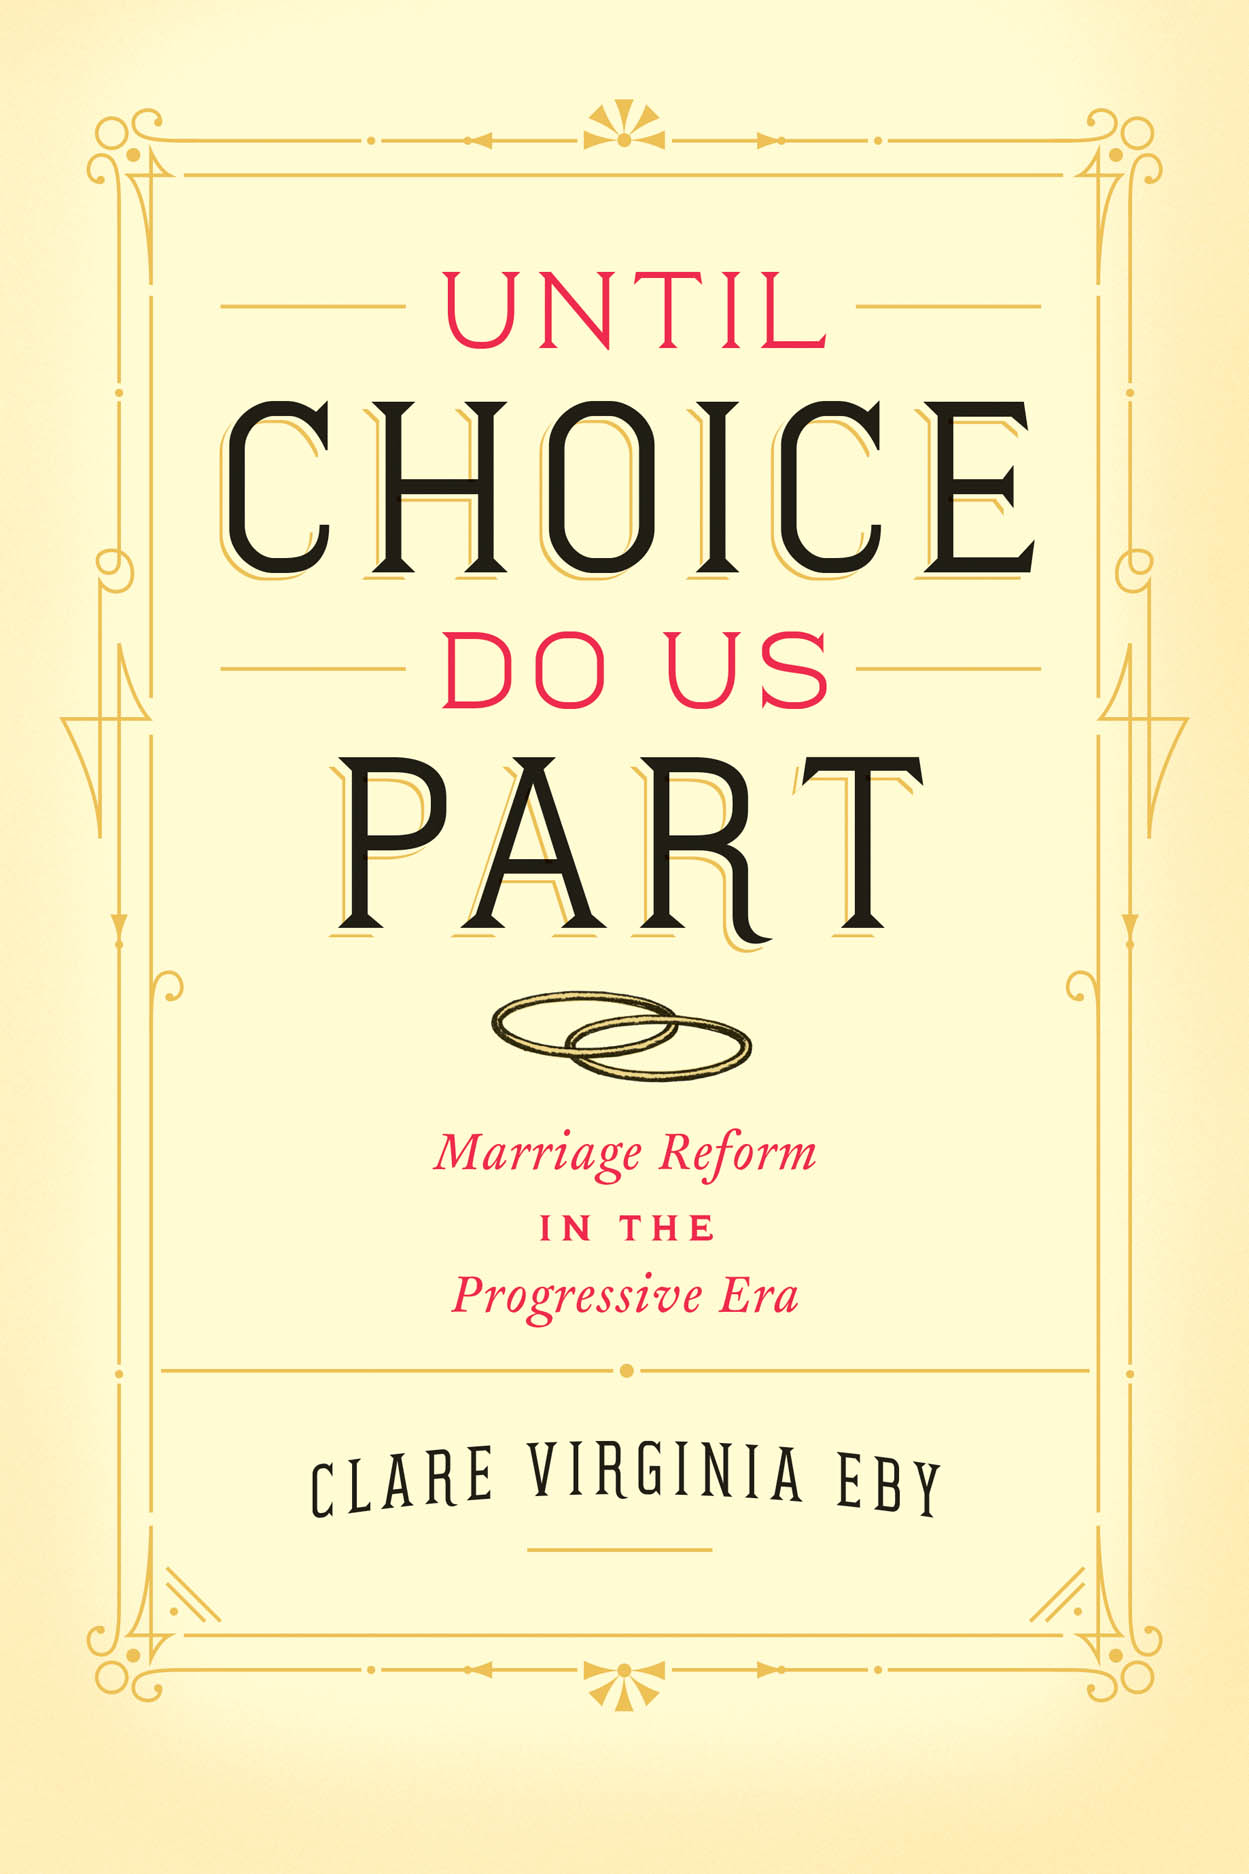 until choice do us part marriage reform in the progressive era eby marriage reform in the progressive era clare virginia eby until choice do us part